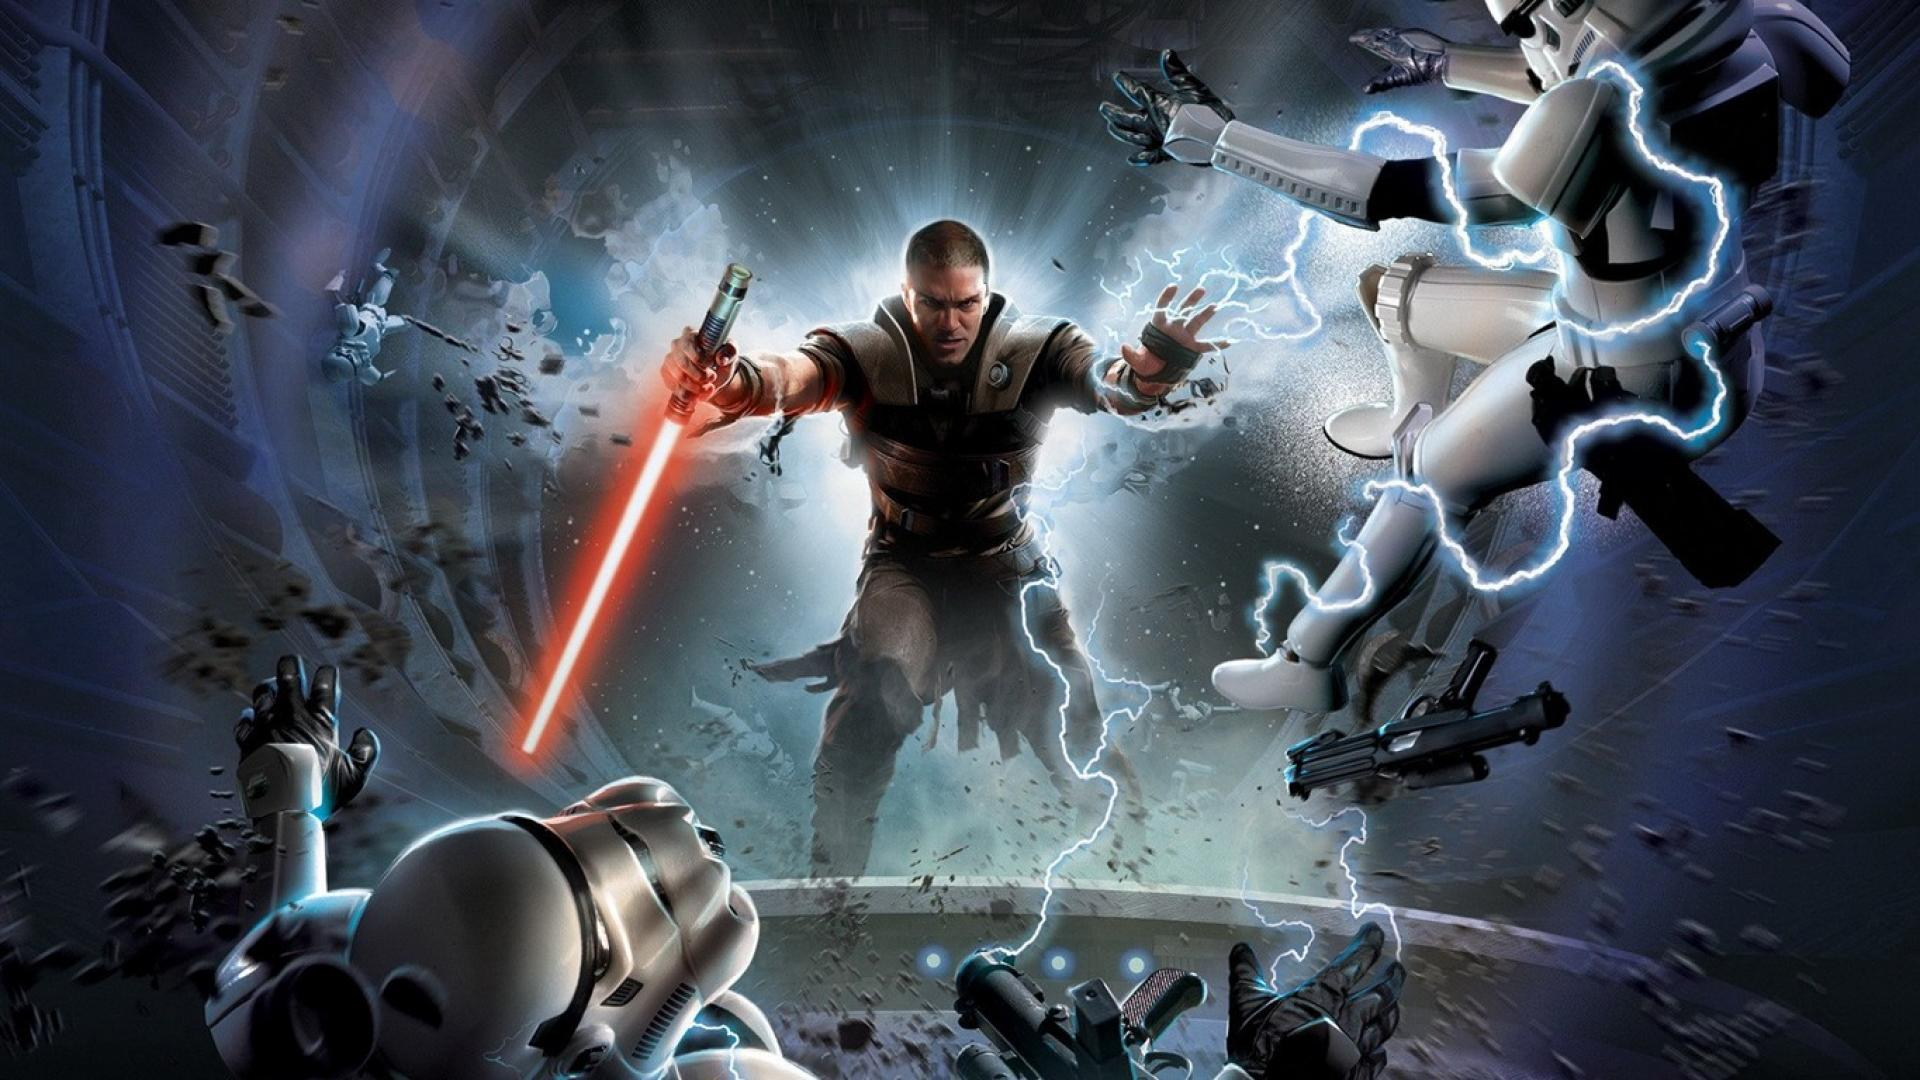 Hd Wallpapers For Pc Star Wars The Force Unleashed Banner 904345 Hd Wallpaper Backgrounds Download